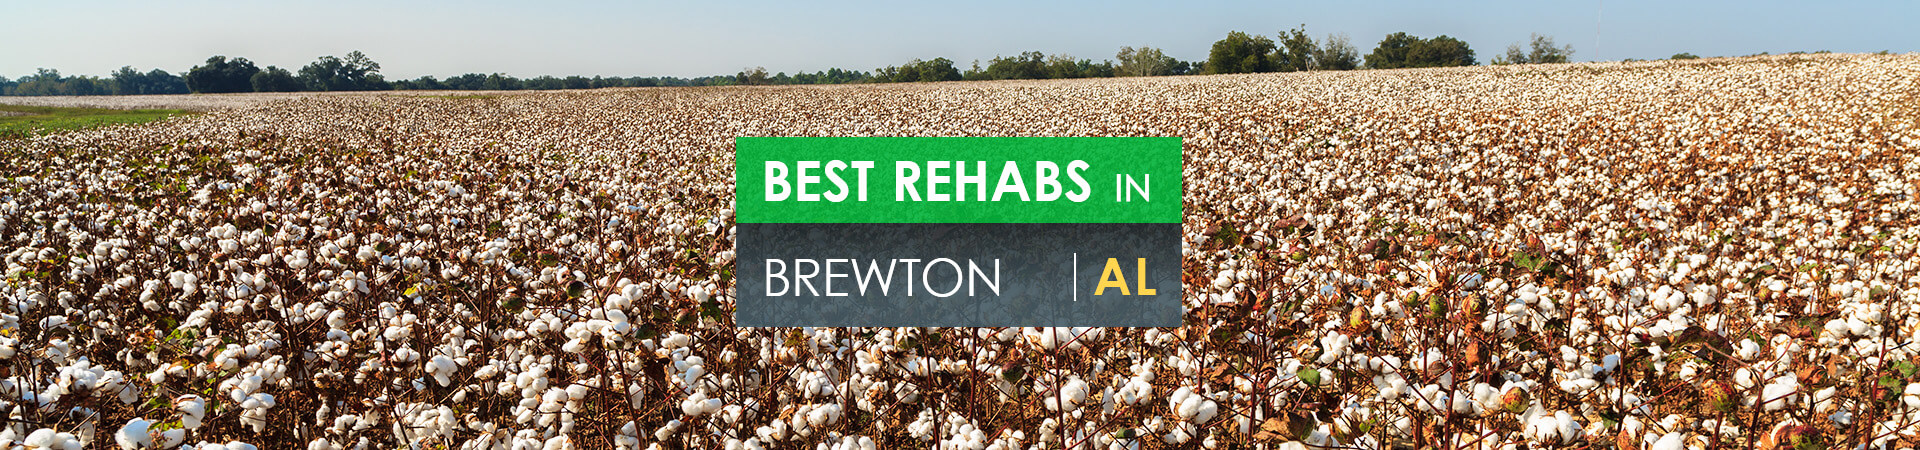 Best rehabs in Brewton, AL